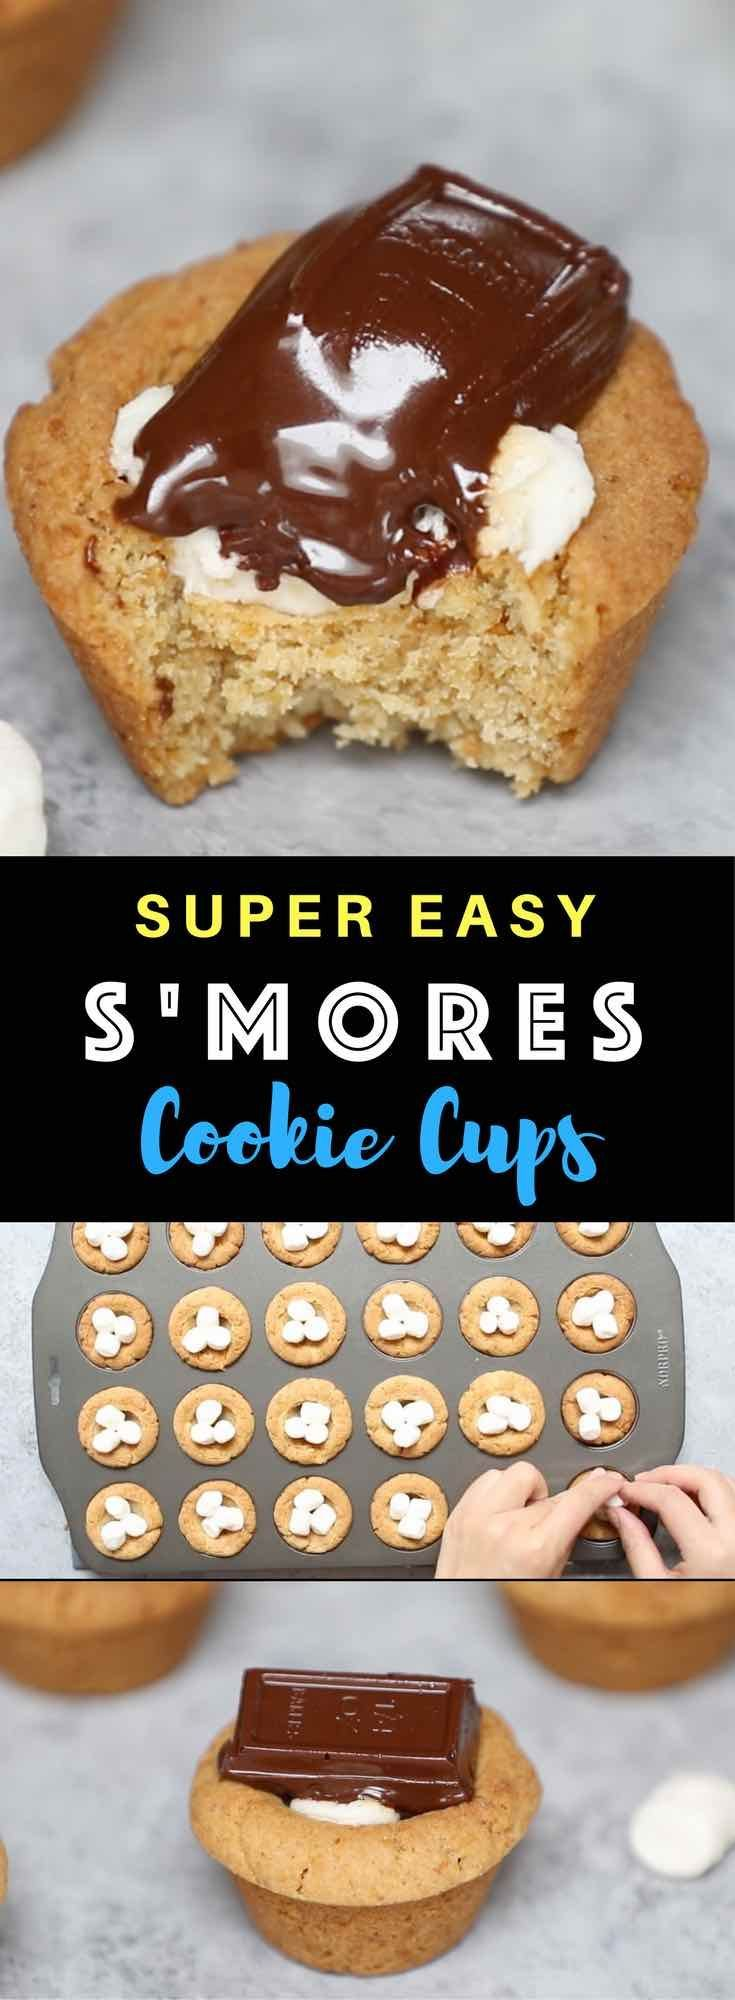 S'mores Cookie Cups – The perfect s'mores recipe that's one of my favorite! Hot Graham cracker cookie cups baked in mini muffin tin, filled with marshmallow, and then topped with semi-sweet Baker's or Hershey's chocolate bars, boiled to gooey perfection. They melt in your mouth! So Yummy! All you need is only a few simple ingredients. Fun recipe to make with kids. Quick and Easy recipe that takes only 25 minutes. Dessert, Party Food. Vegetarian. Video recipe. | http://Tipbuzz.com